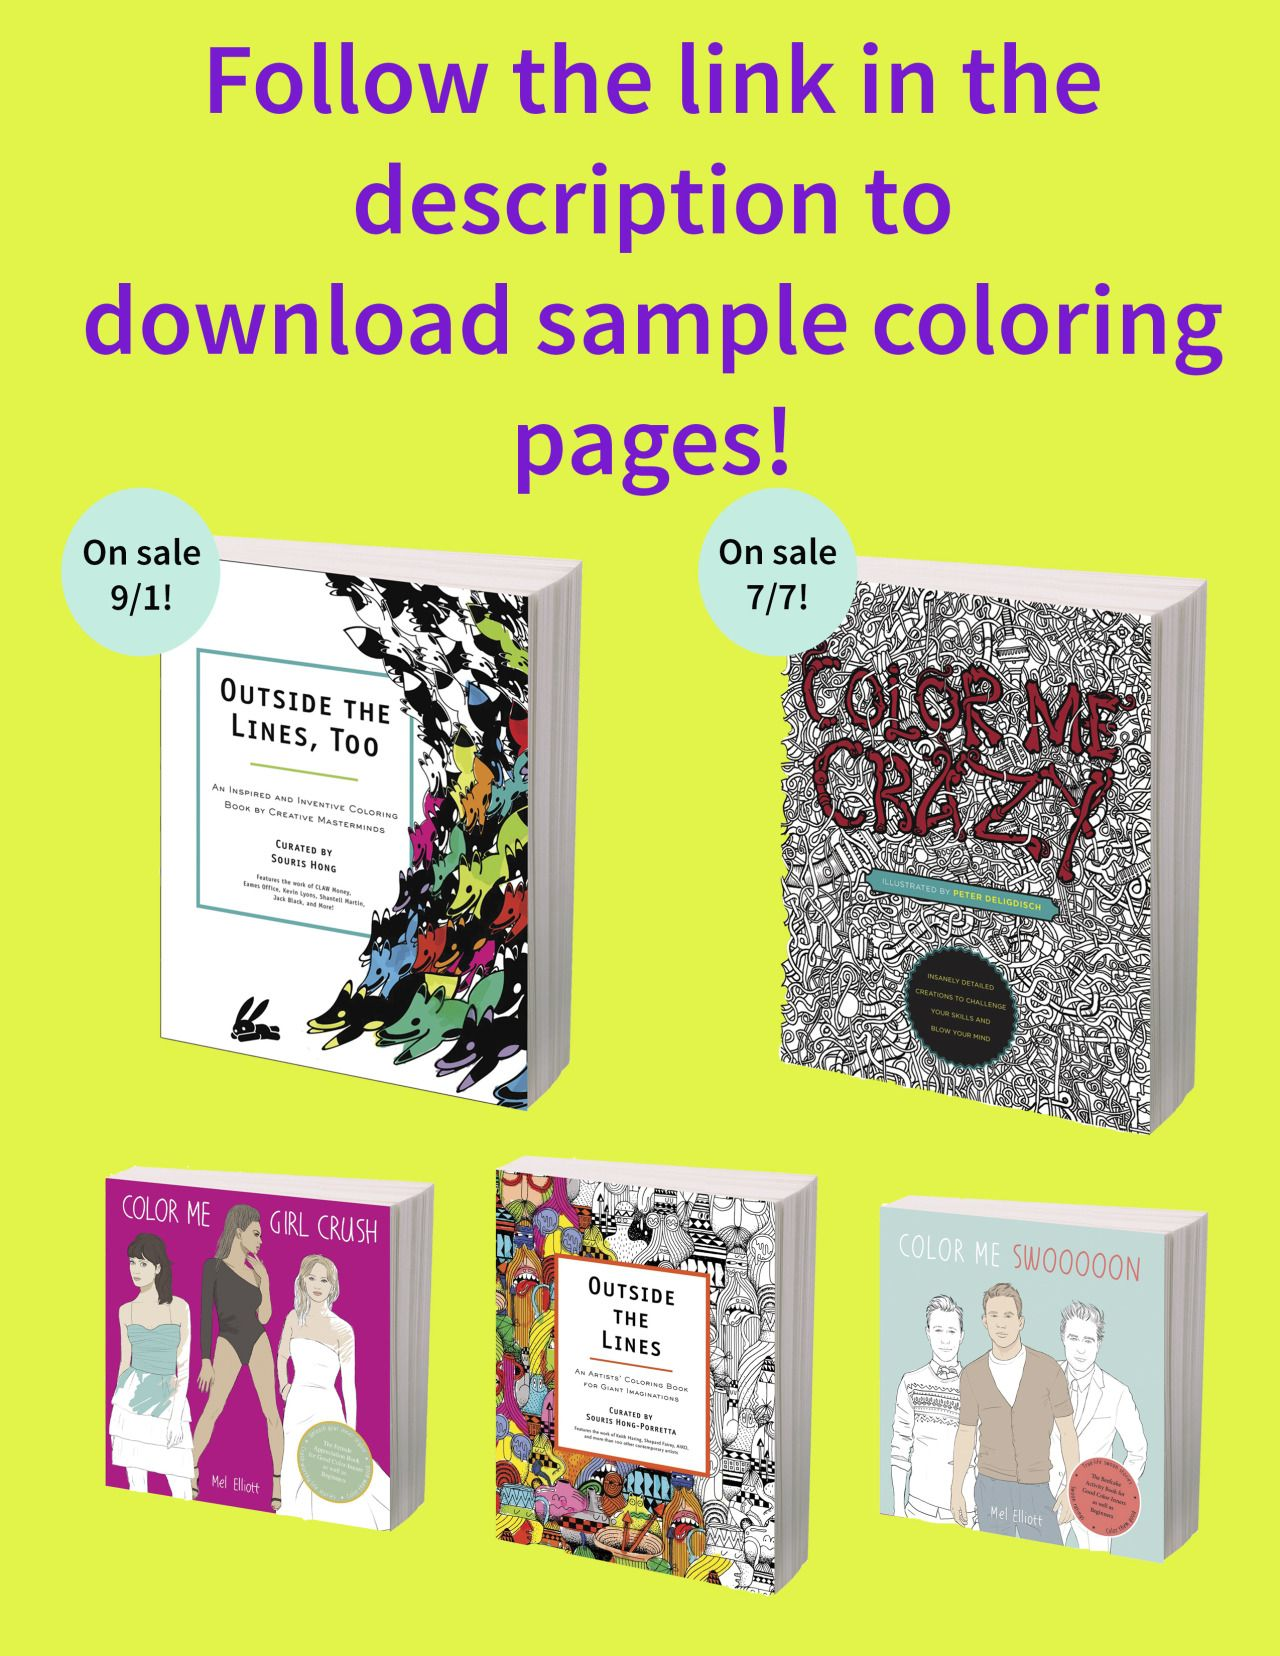 Rediscover your creativity with Perigees Adult coloring books